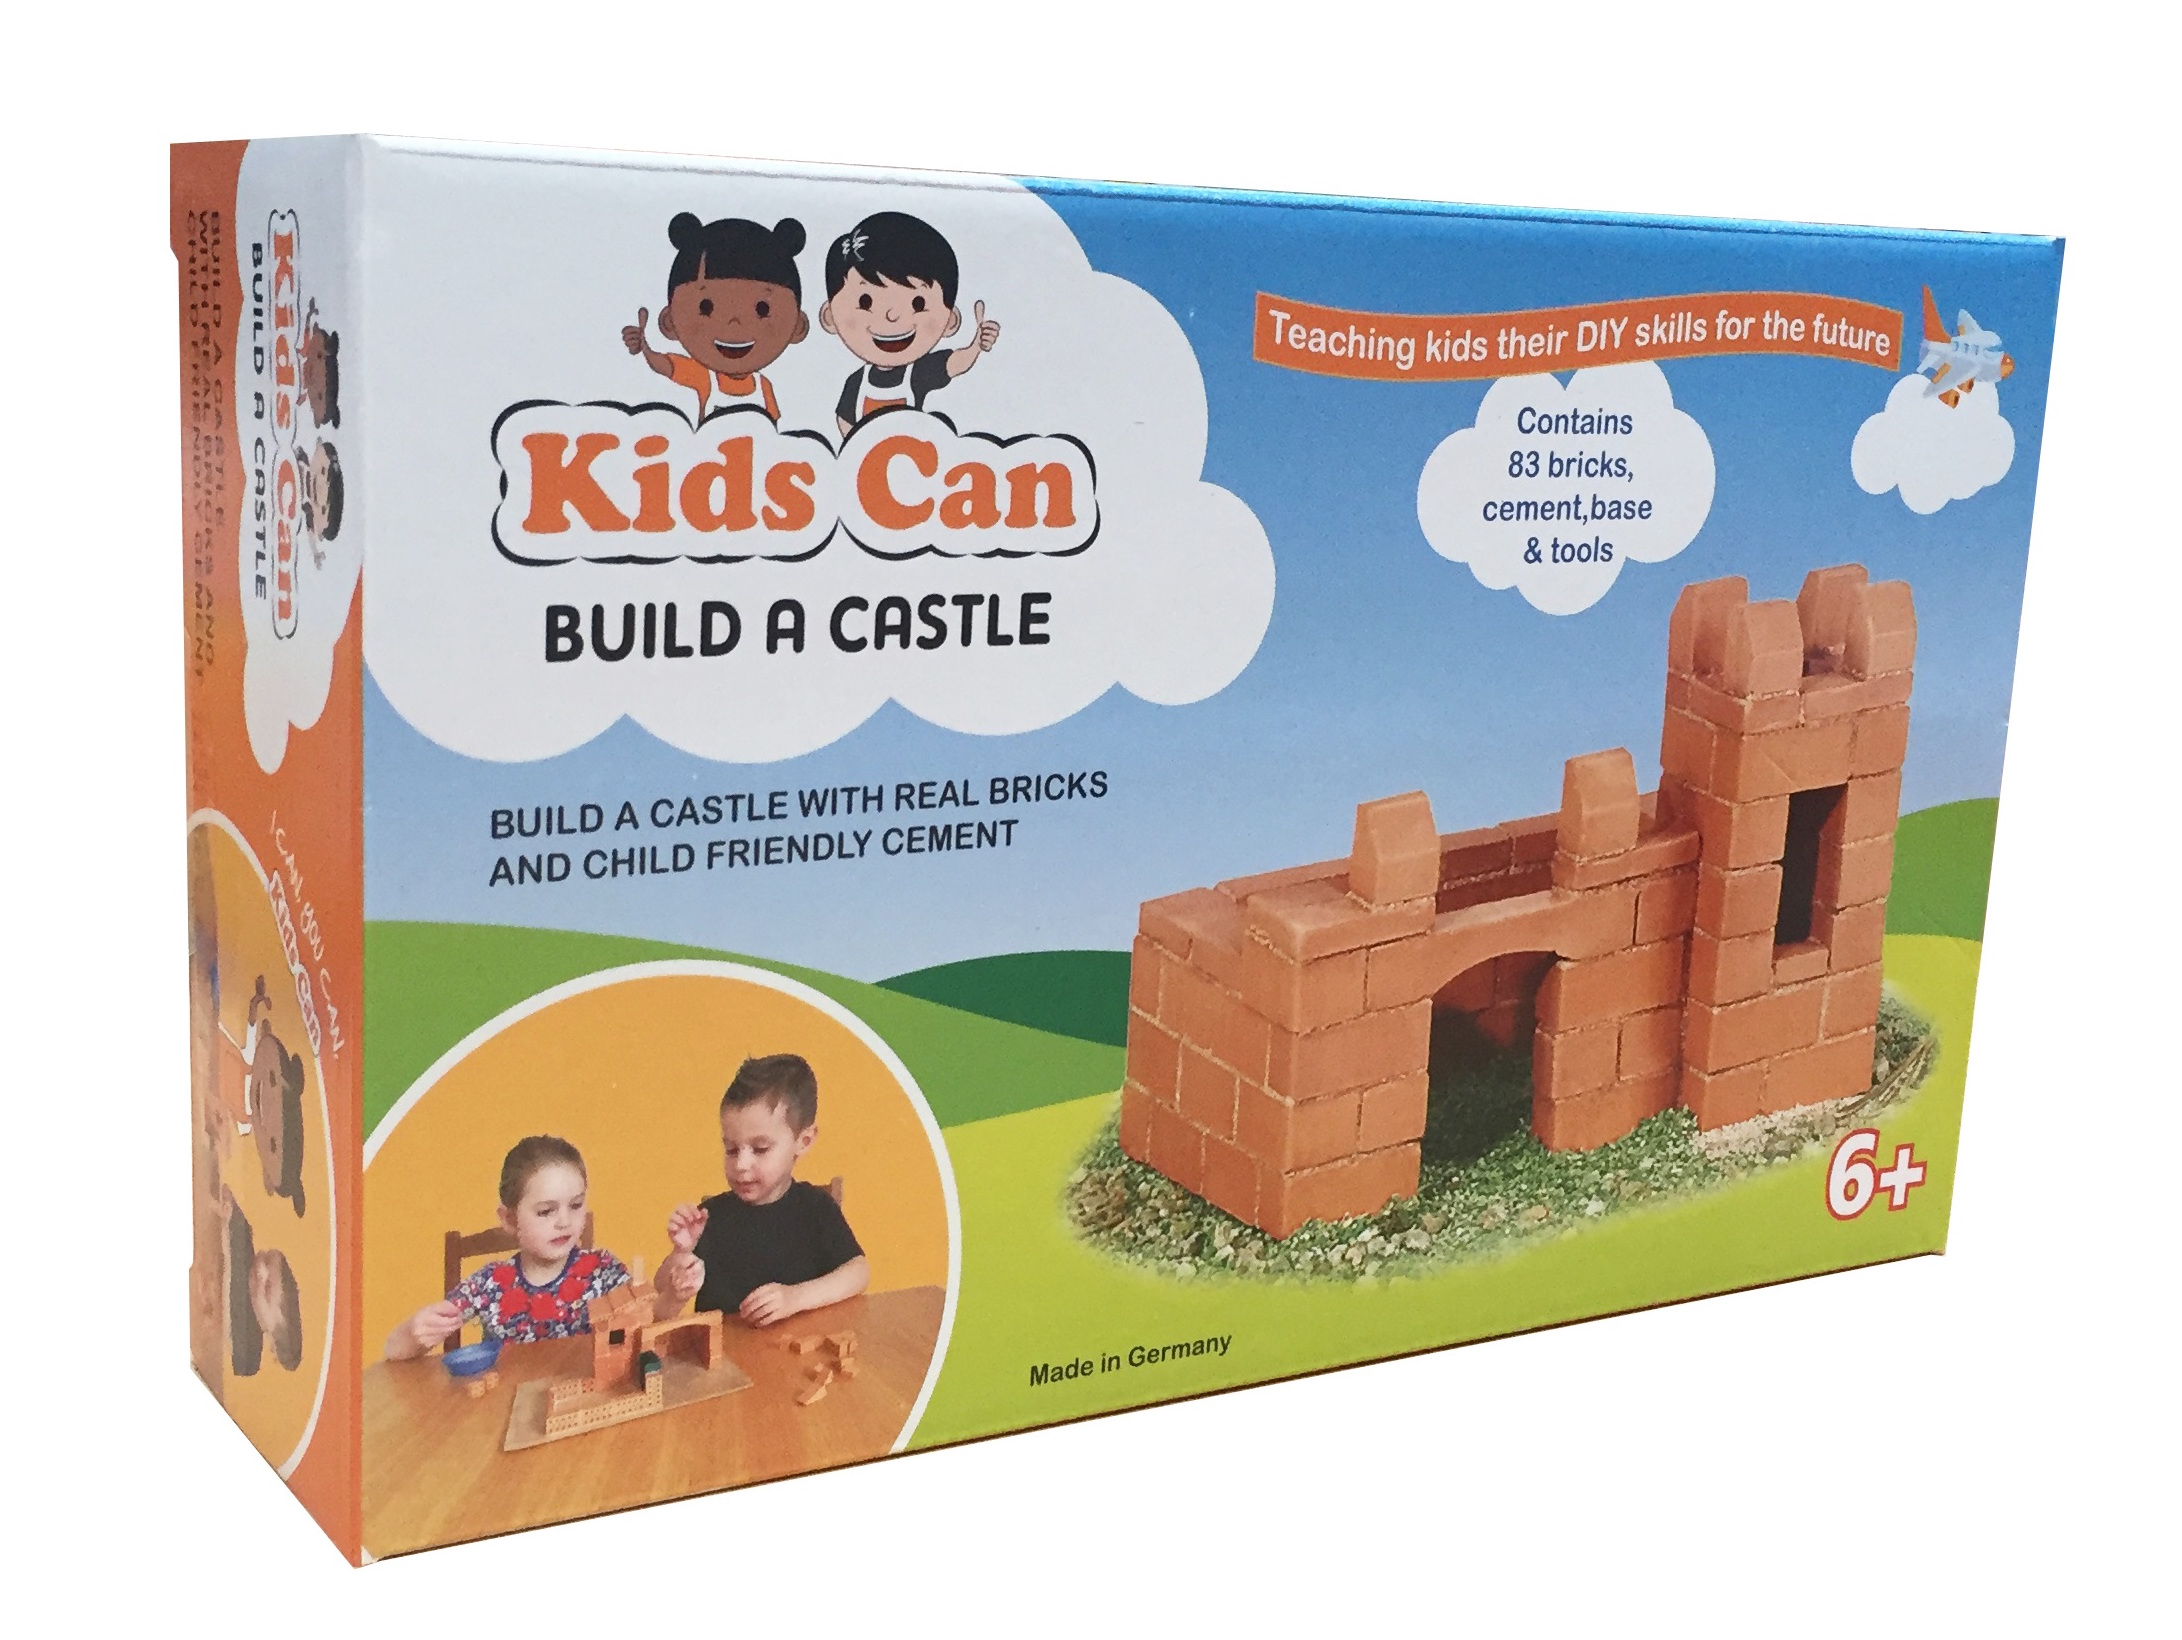 Building With Real Bricks With Kids Can Kits